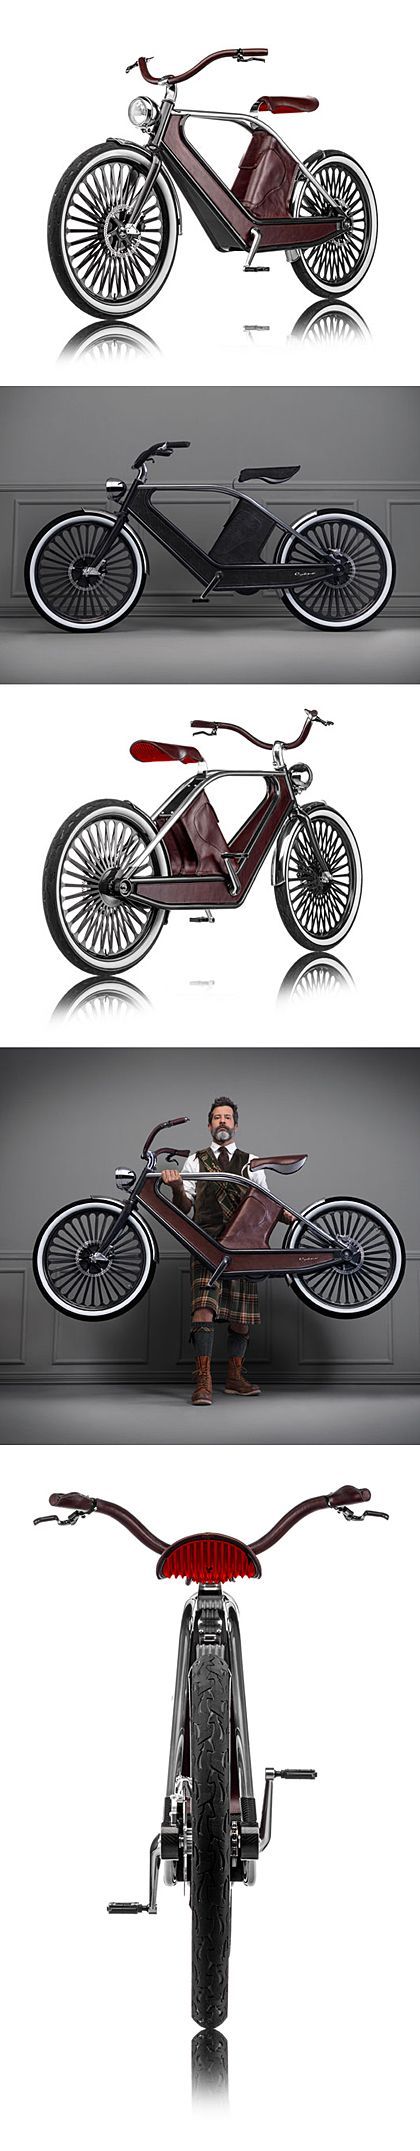 Cykno : The Eclectic-Electric Bicycle